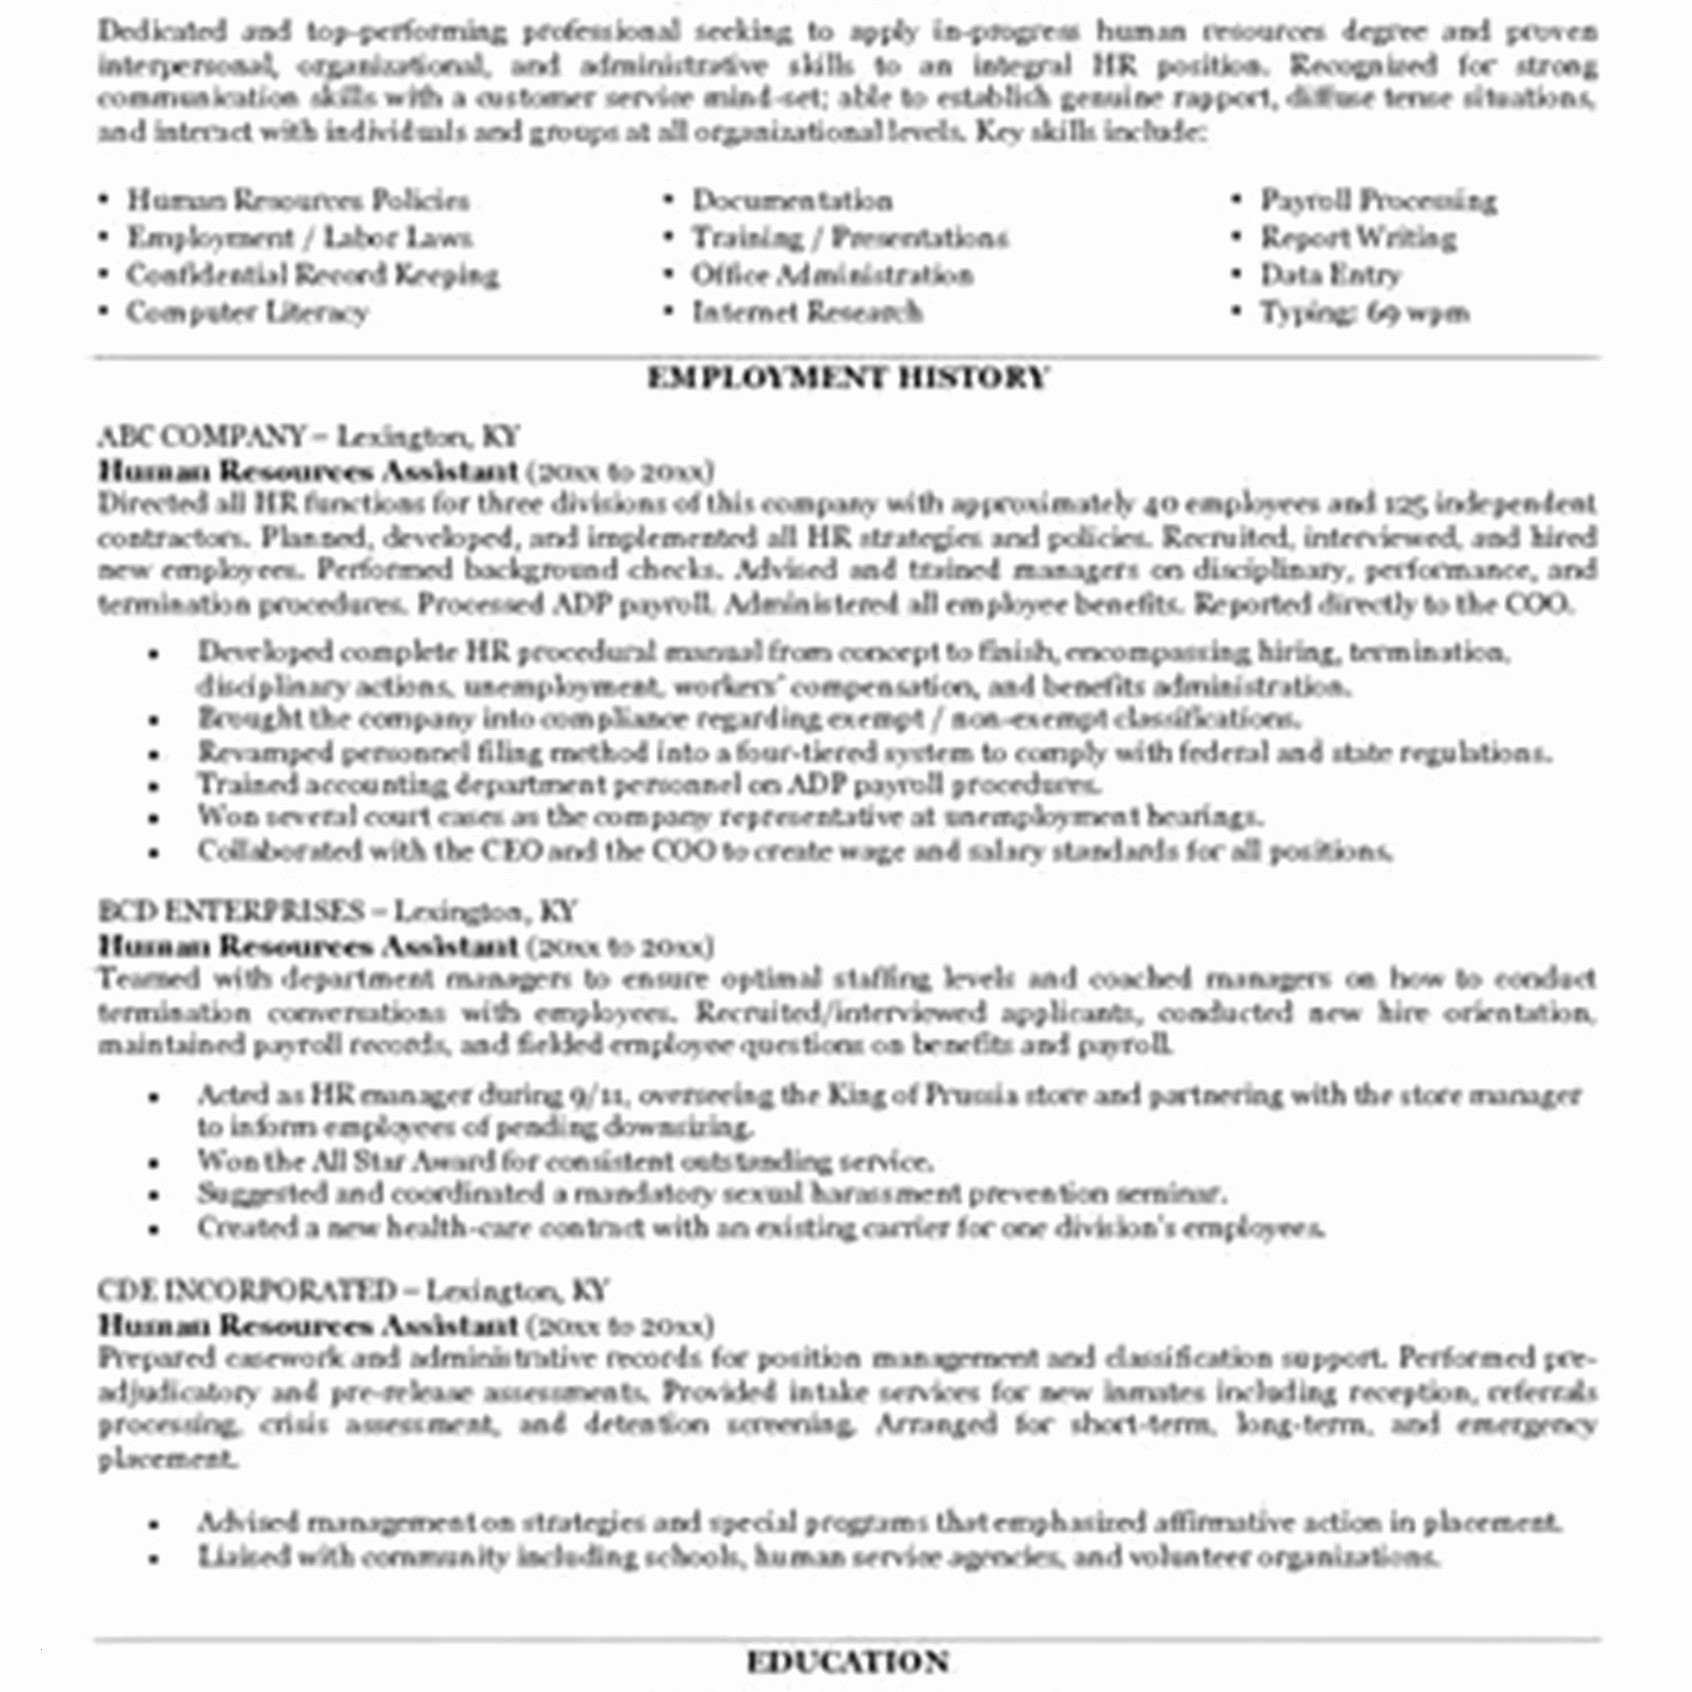 Human Resources Resume Summary - Hr assistant Resume Sample